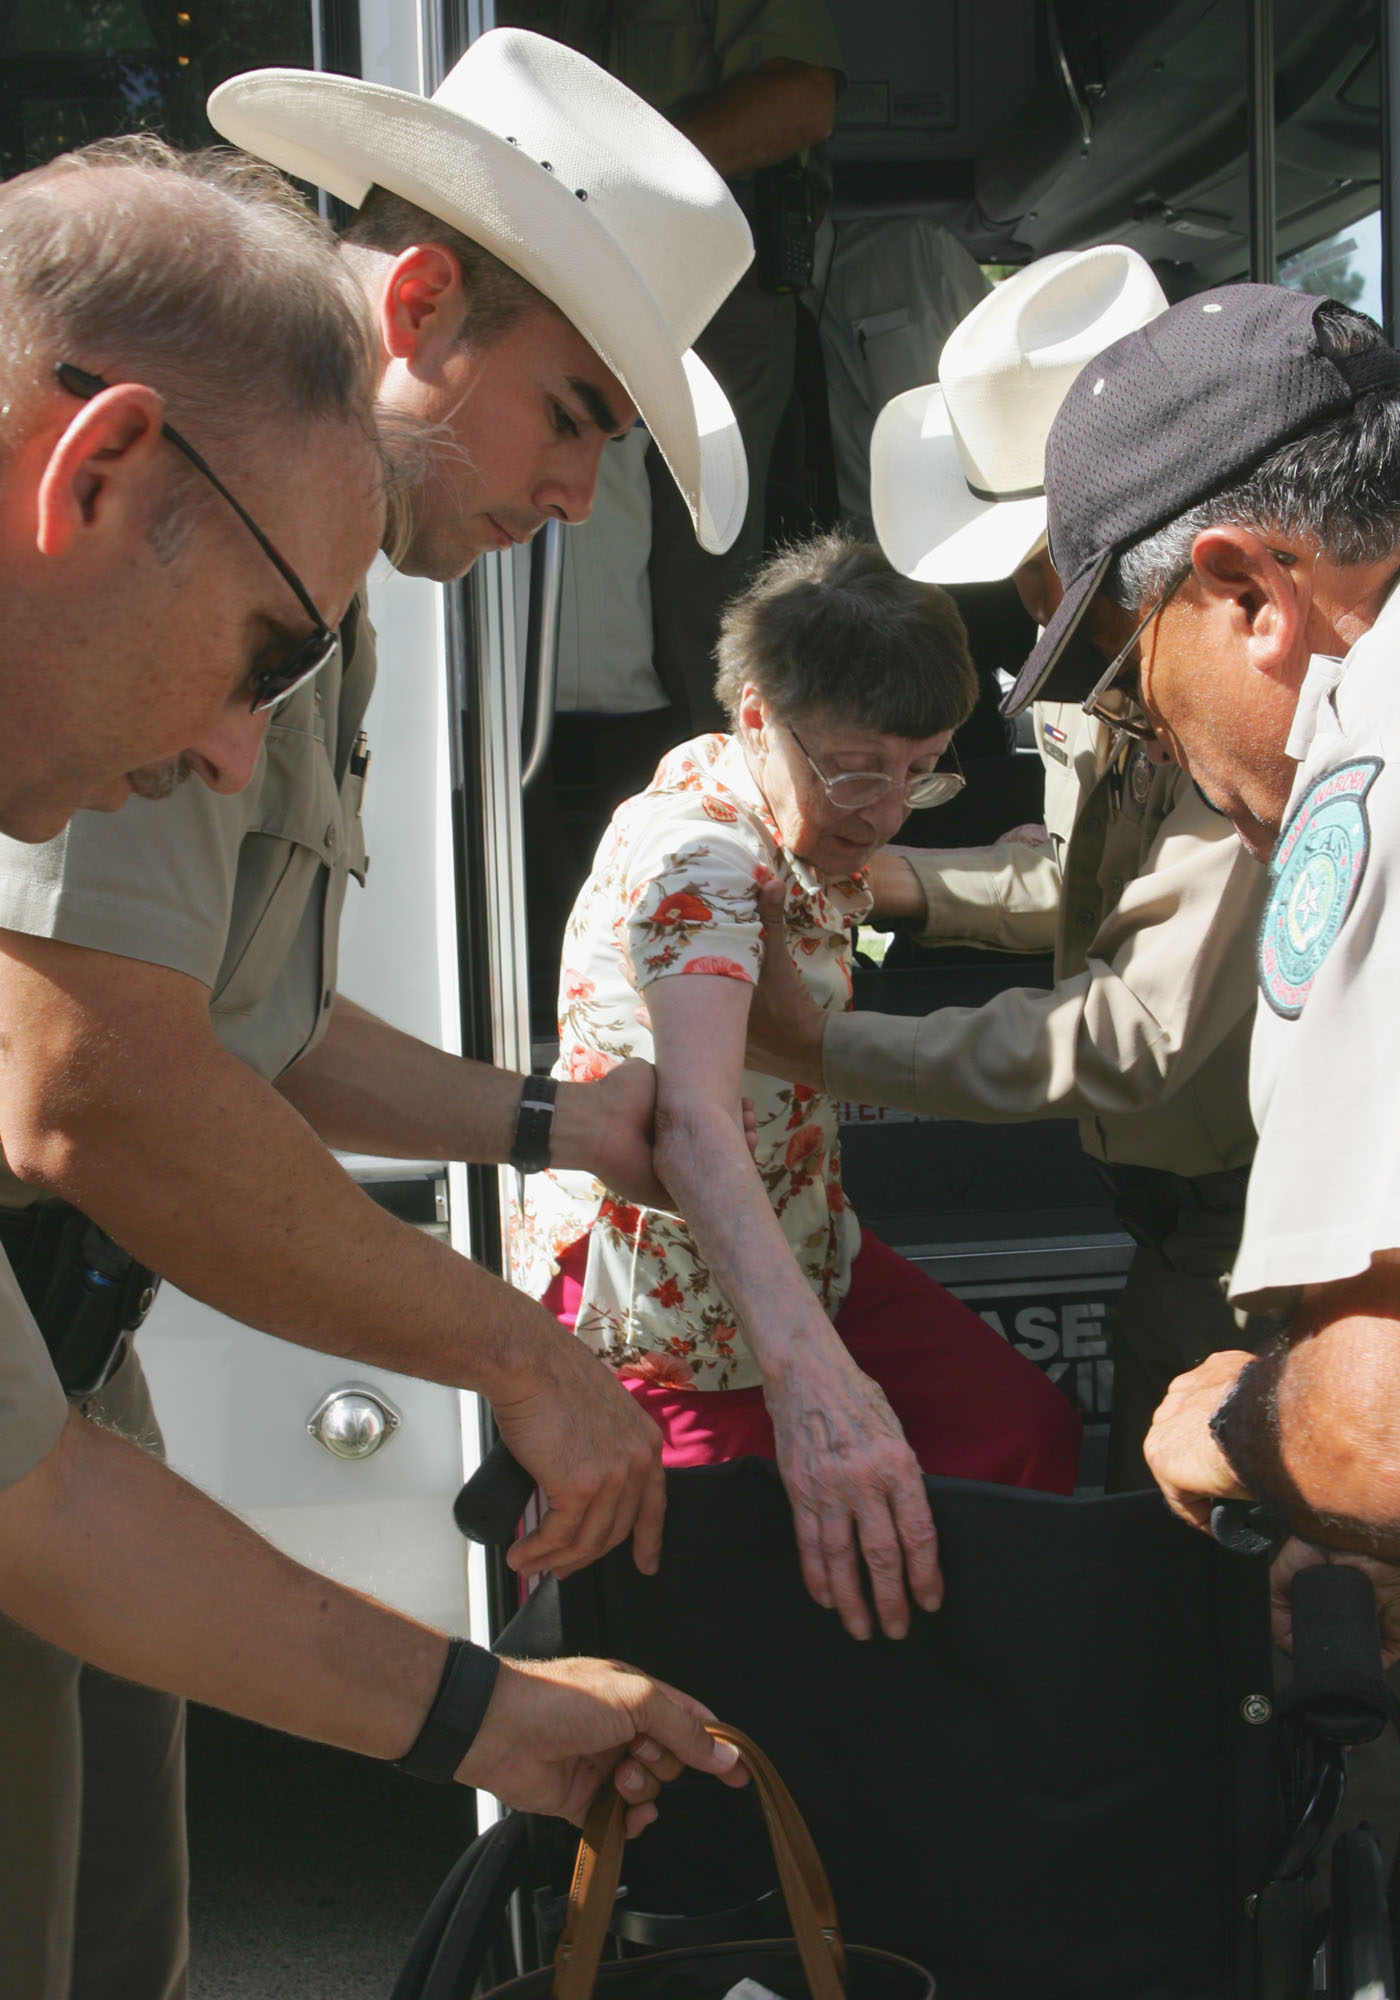 Please wait while image loads, then follow the instructions to download the image.